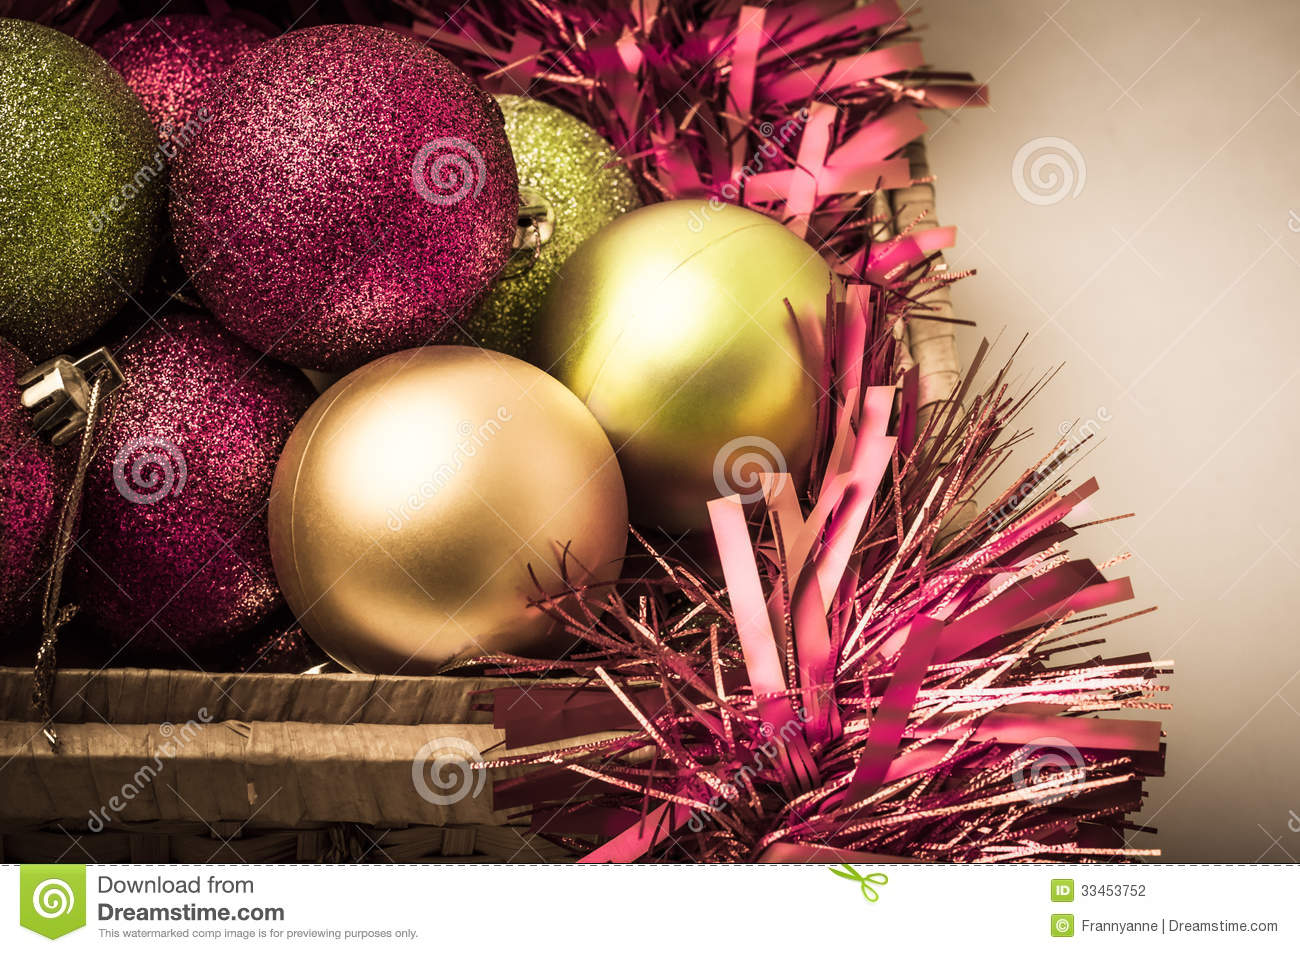 christmas decorations in storage basket - Pink And Gold Christmas Decorations